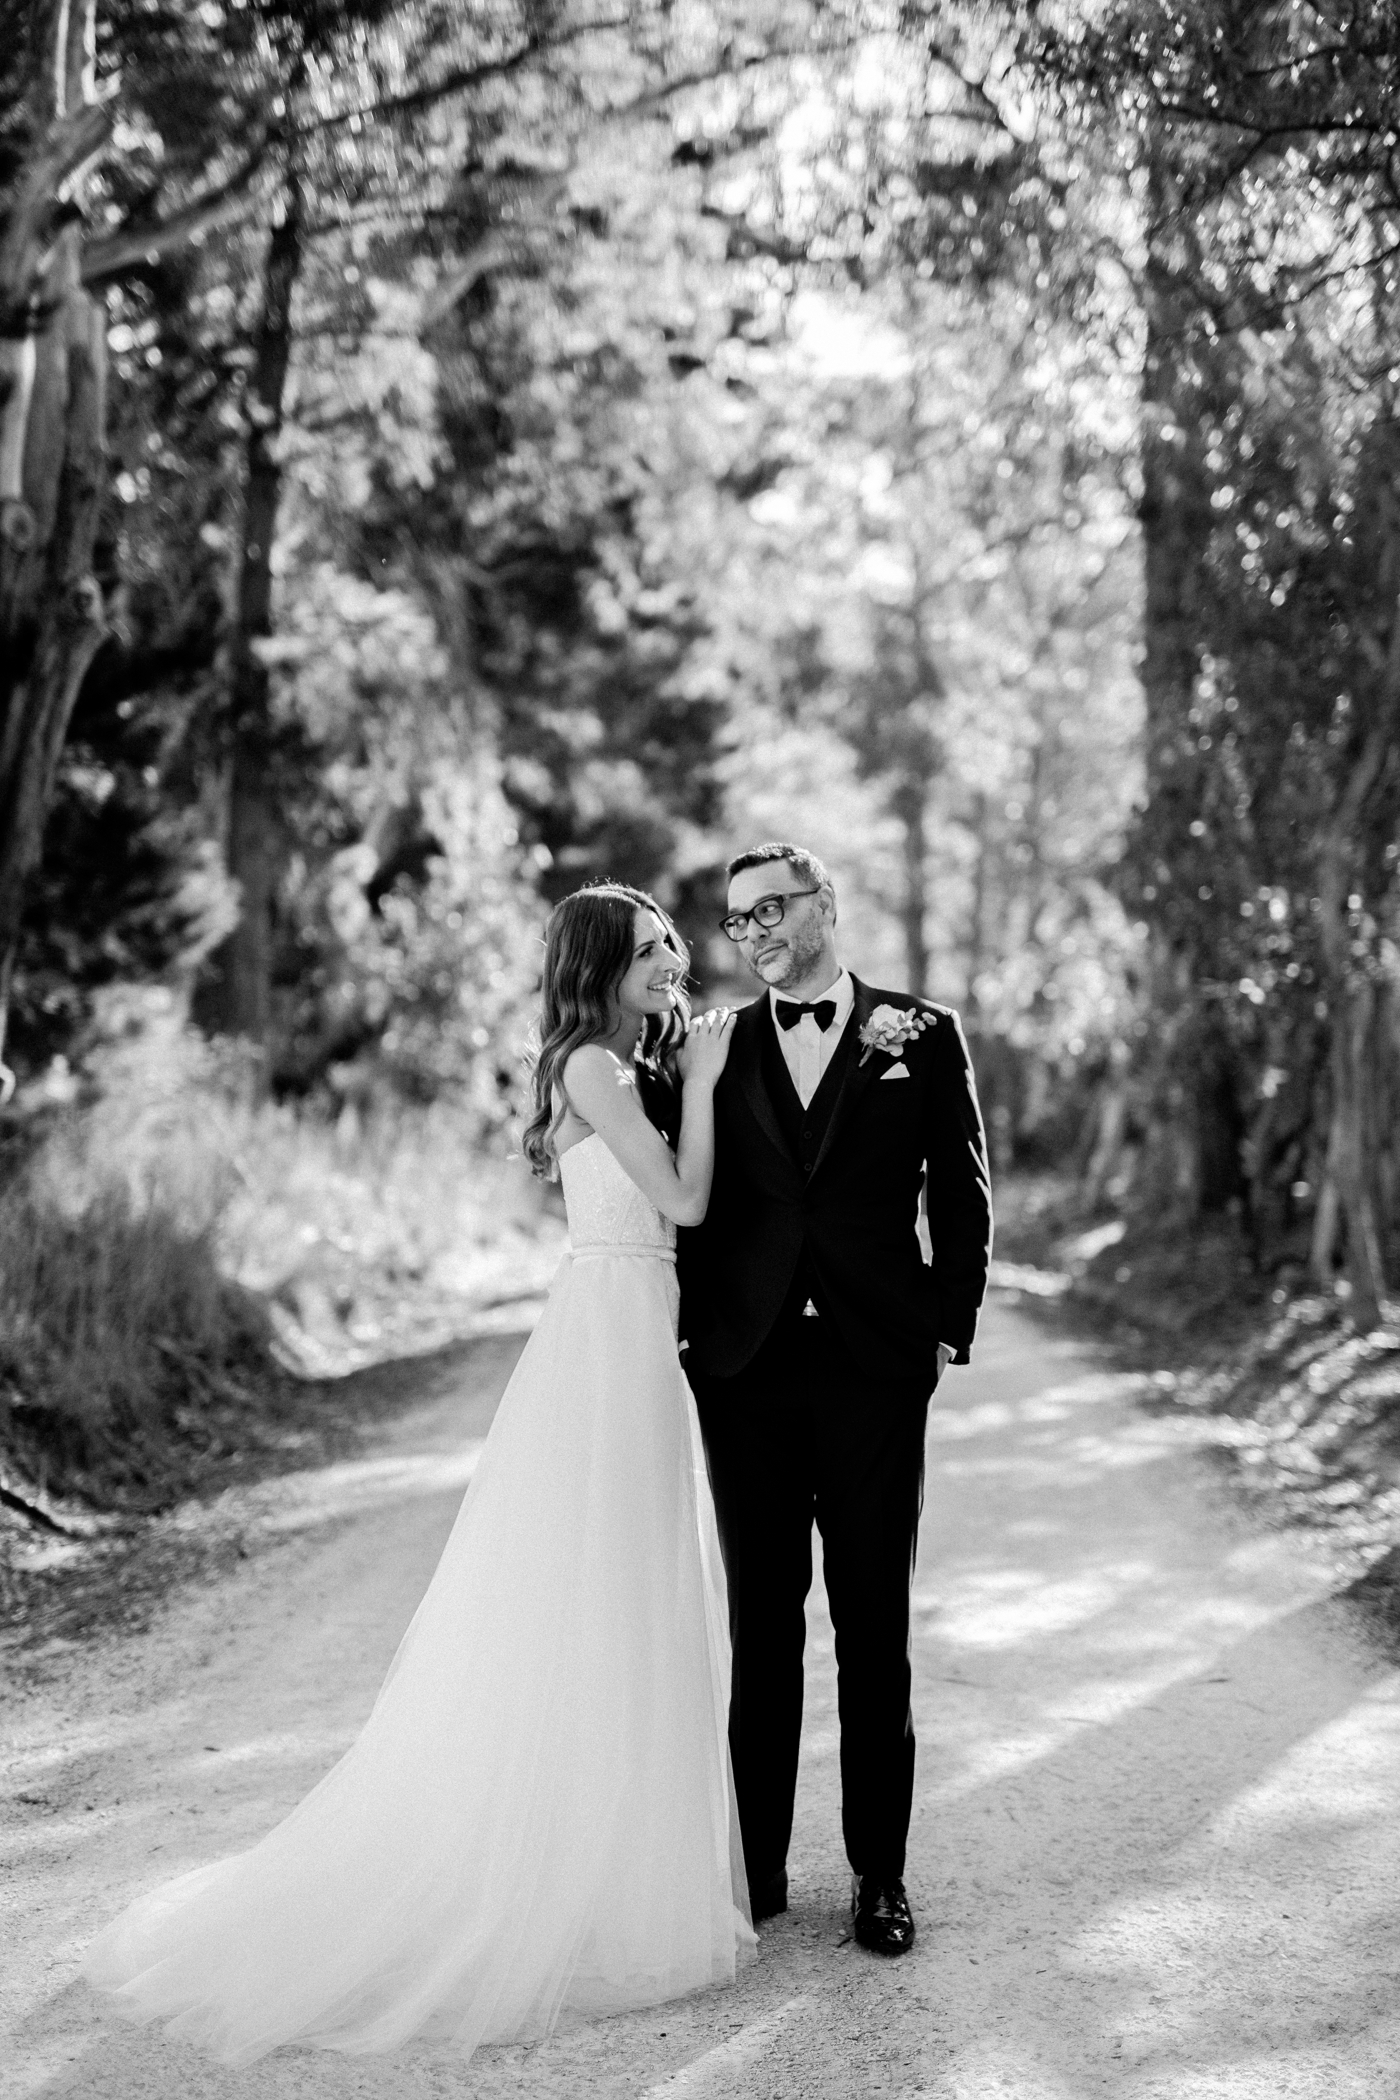 Steph & Quinn - Natural Wedding Photographer in Adelaide - Beautiful Wedding Photography - Simple, modern and natural wedding photographer - Katherine Schultz - www.katherineschultzphotography.com_0041.jpg